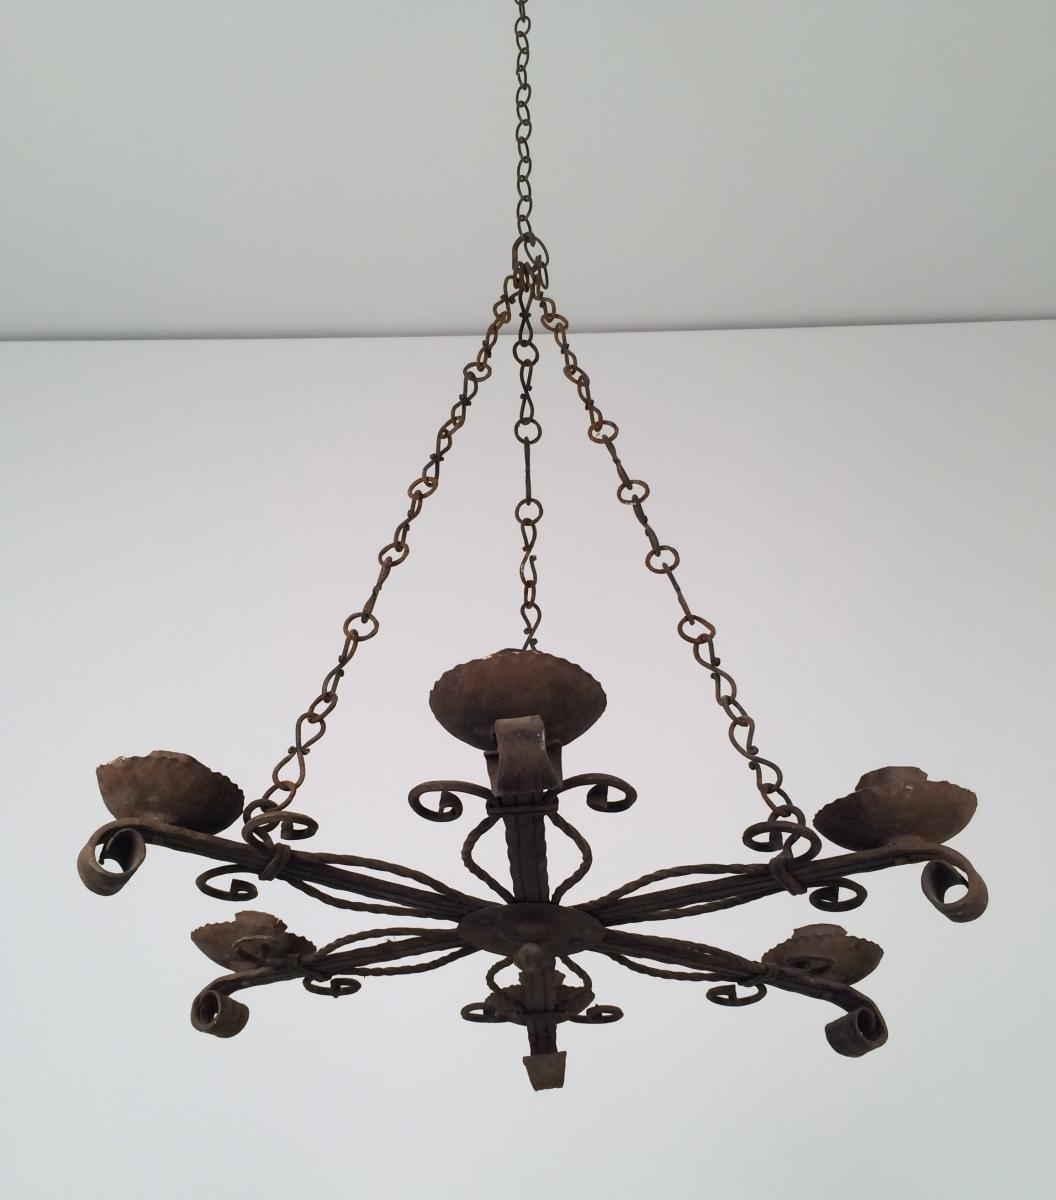 Wrought Iron Chandelier With 5 Candle Holders, 1920S For Sale At Pamono Pertaining To Famous Wrought Iron Chandeliers (View 7 of 15)